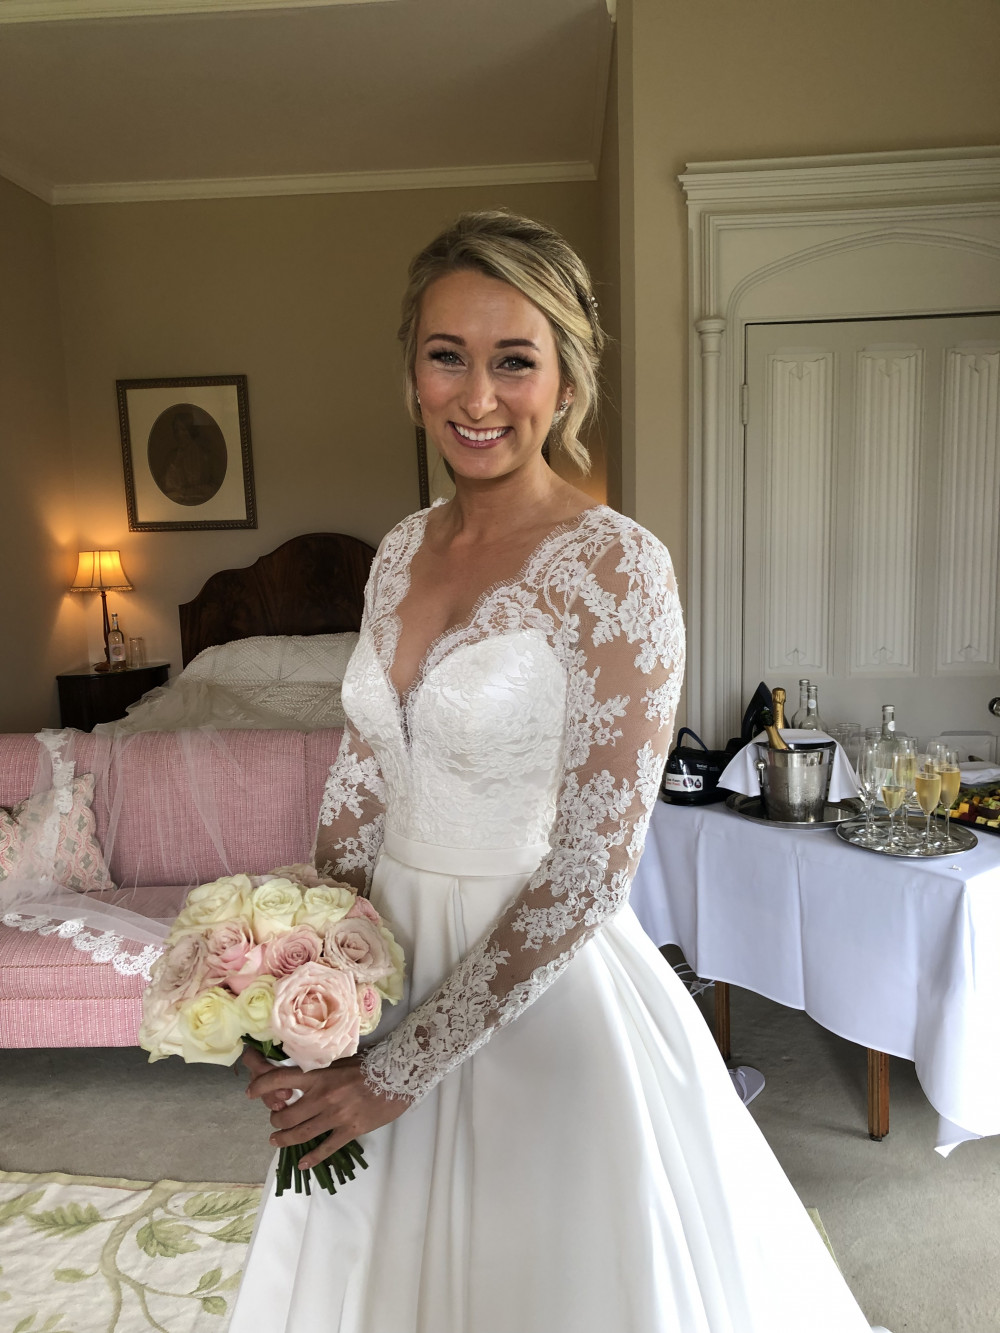 Gorgeous glowing skin and a swept up do for this beauty. I concentrate on the skin prep for all my brides to ensure they have the perfect bridal glow! Hair and makeup by Neecol Corry Weddings - Make Me Bridal Artist: Neecol Corry Weddings. #classic #glamorous #naturalmakeup #bridalmakeup #bridalhair #softupdo #glowingskin